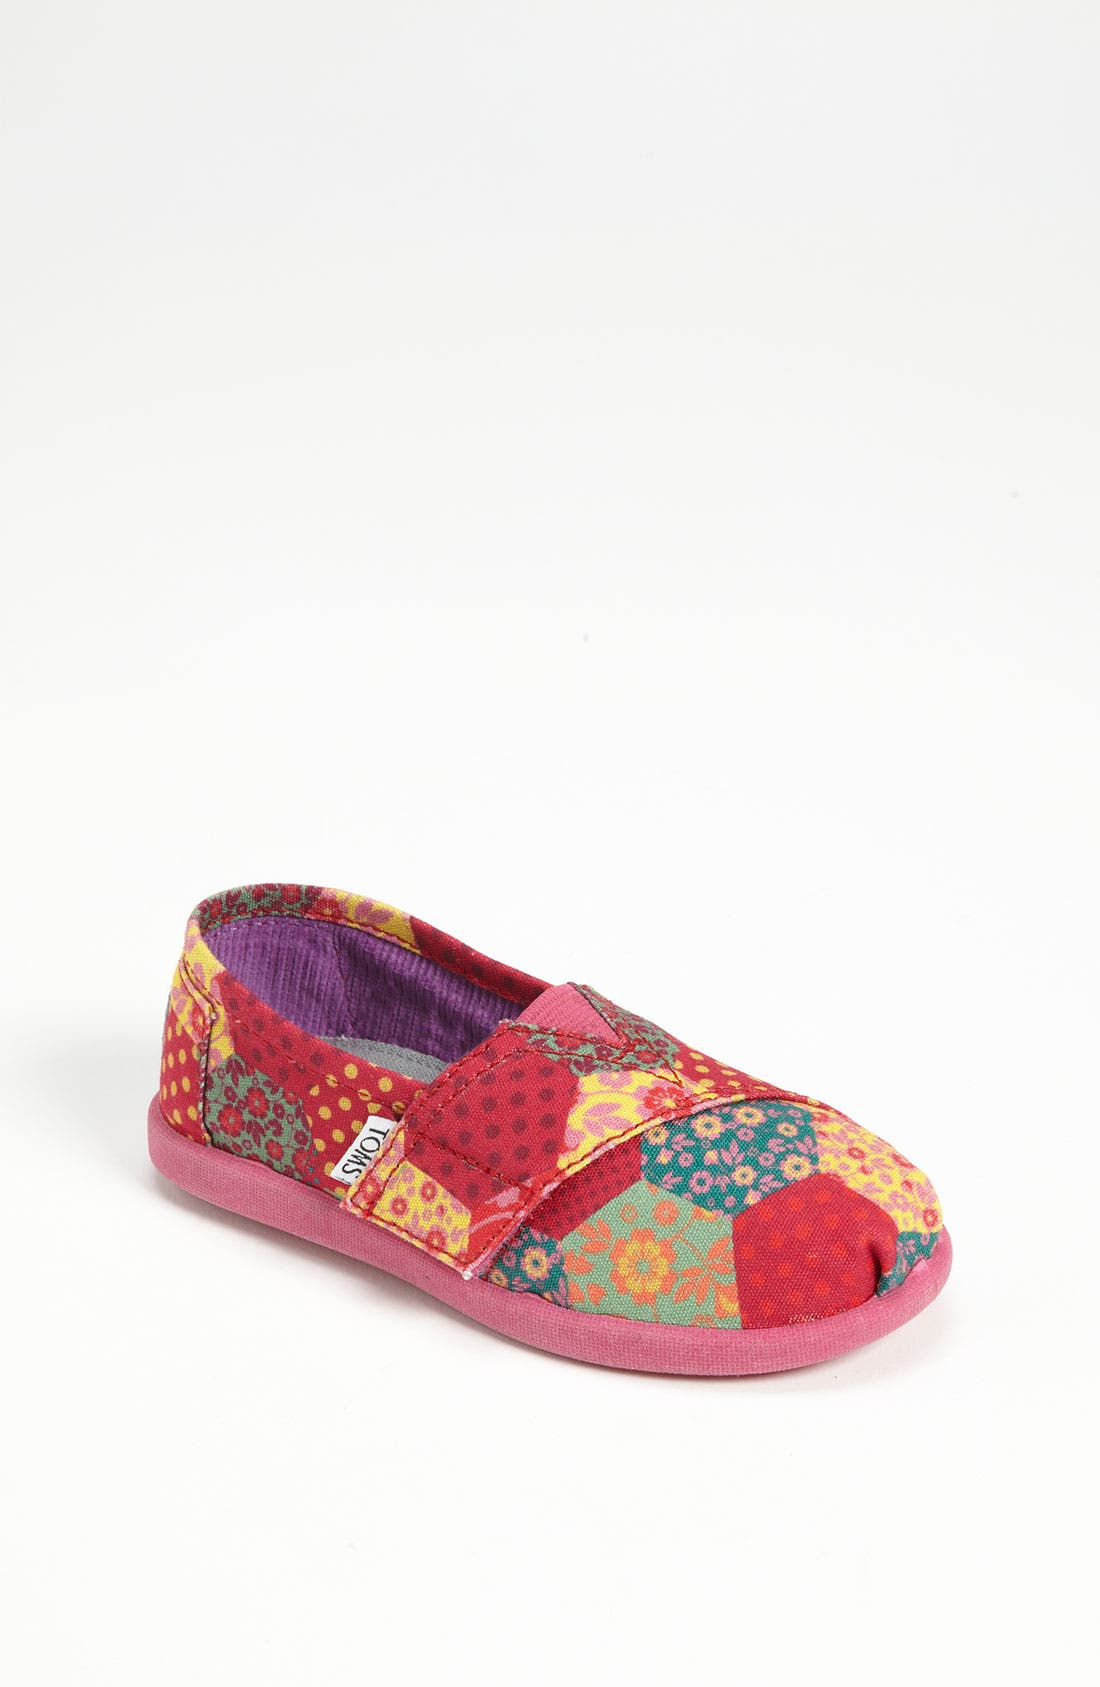 Alternate Image 1 Selected - TOMS 'Classic Tiny - Patchwork' Slip-On (Baby, Walker & Toddler)